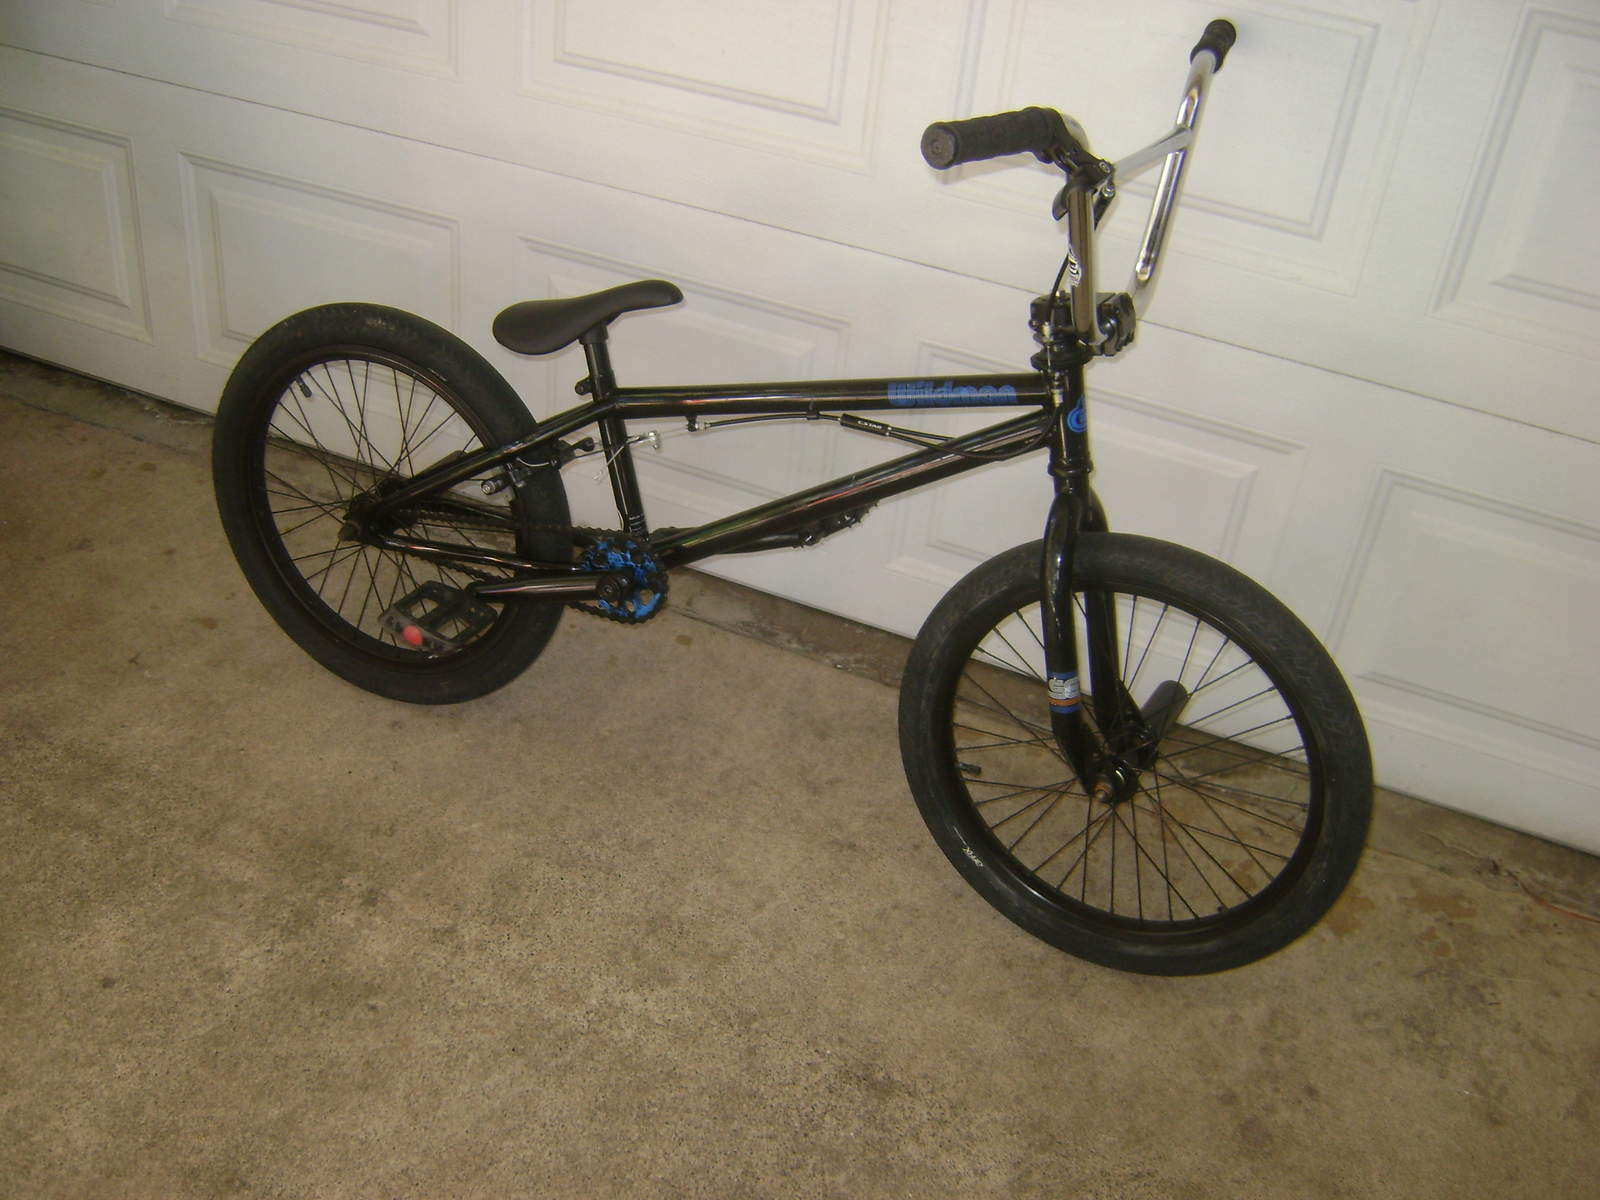 http://uploads.bmxmuseum.com/user-images/6905/dsc011305cd06c7161.jpg